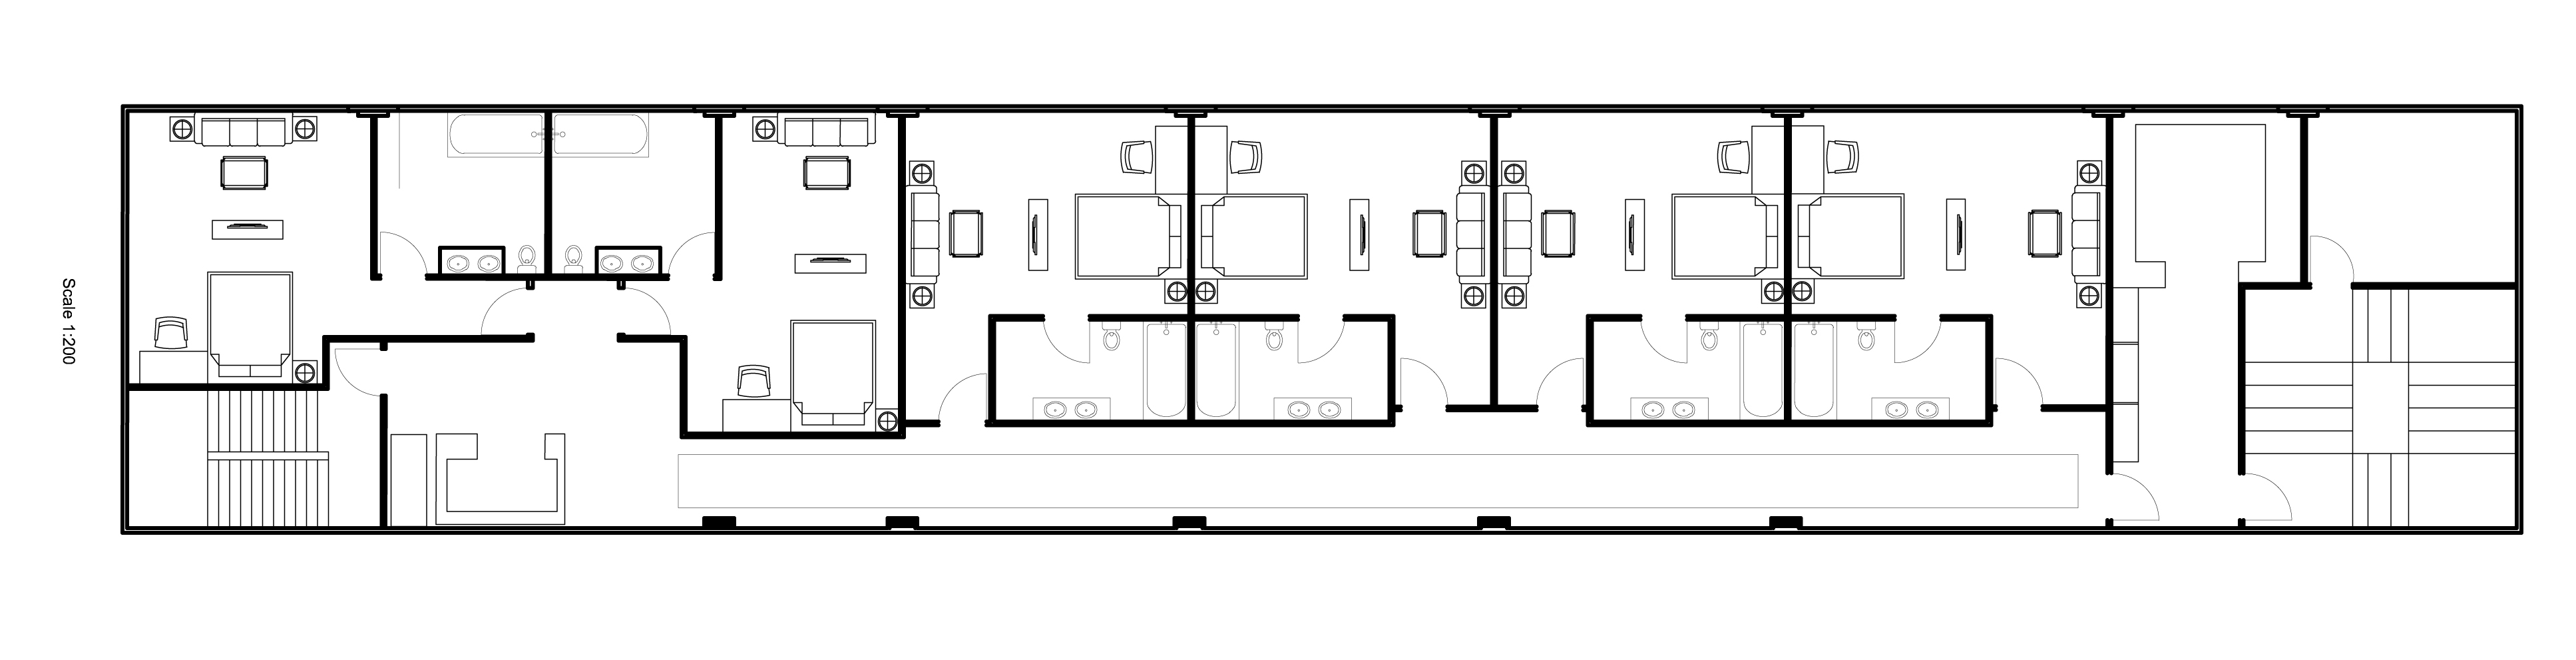 Business Plan Boutique Decoration File Floor Plan Of Hotel Rooms Jpg Wikimedia Commons